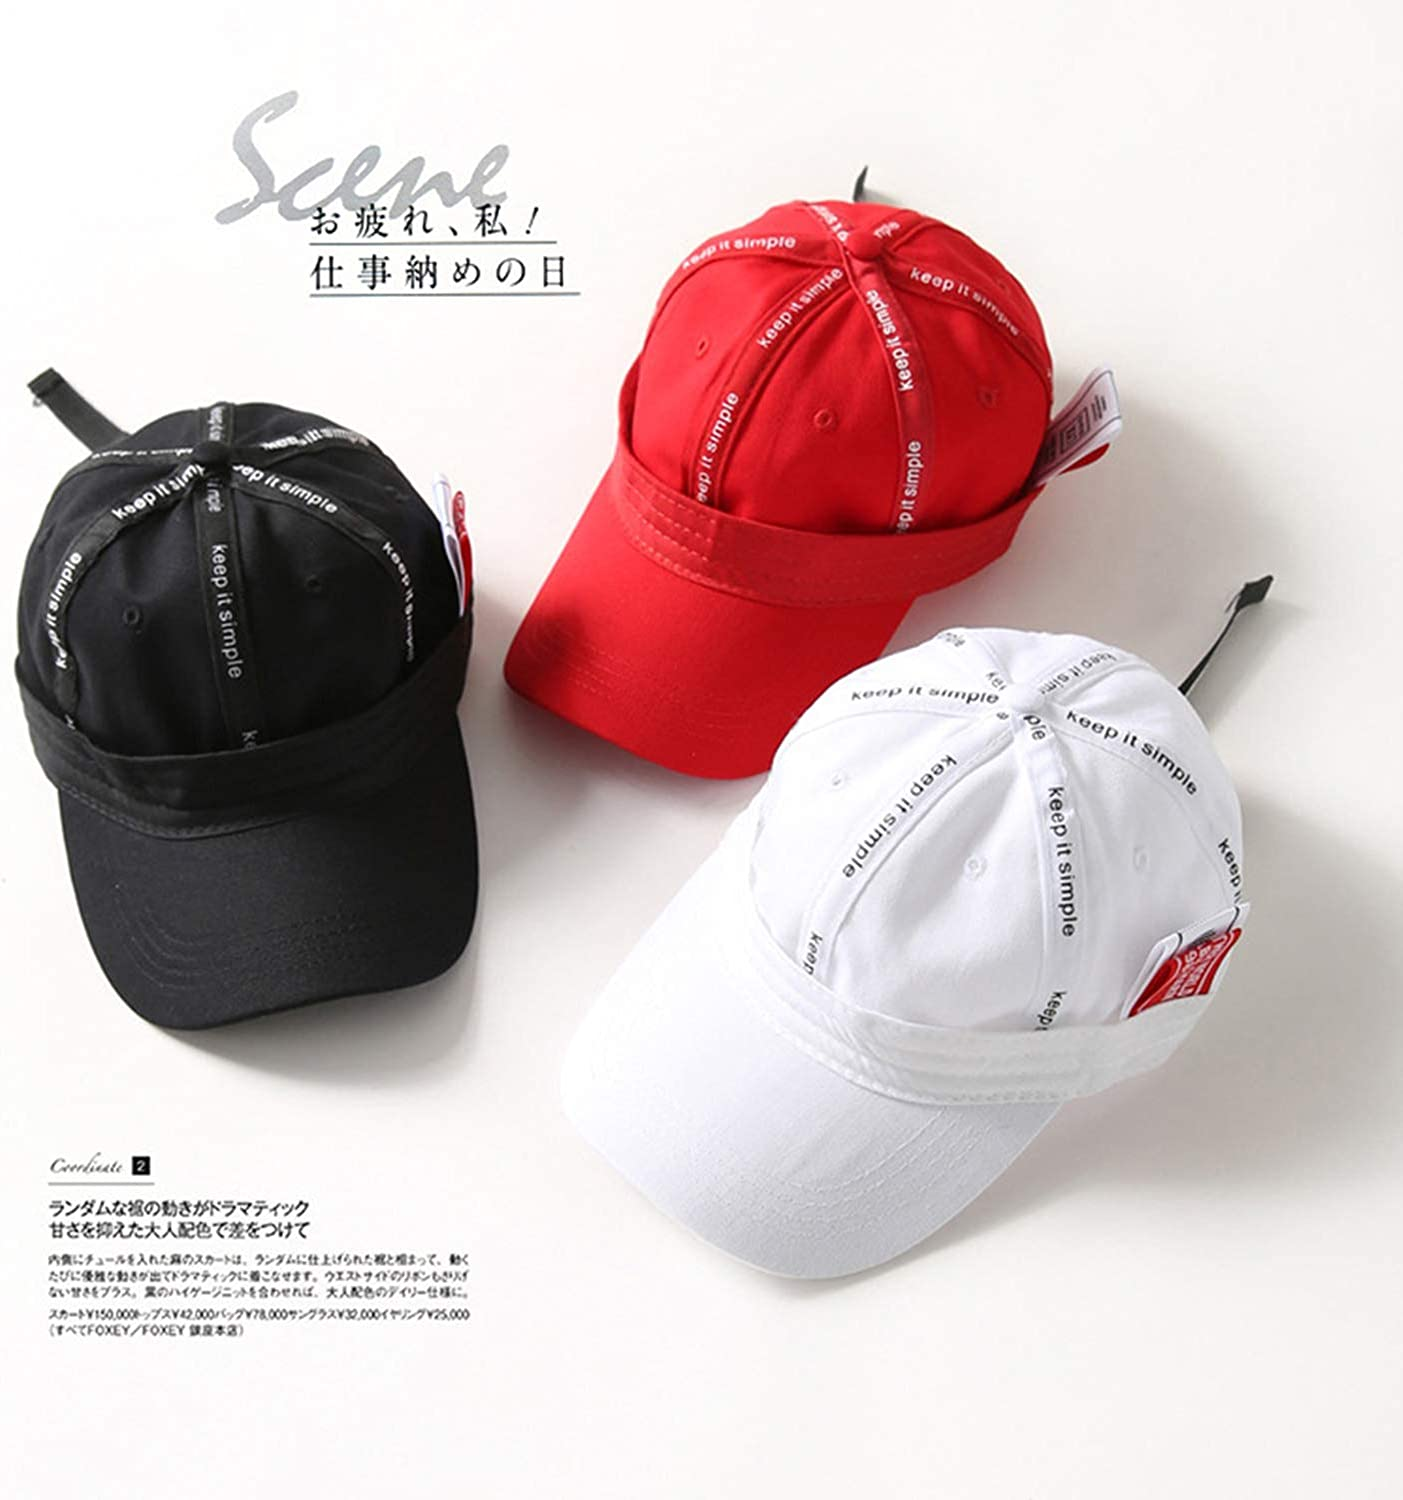 Minusone Fashion Reverse Design Hip Hop Hat Cotton Red White Baseball Cap Funny Caps Summer Dad Hats